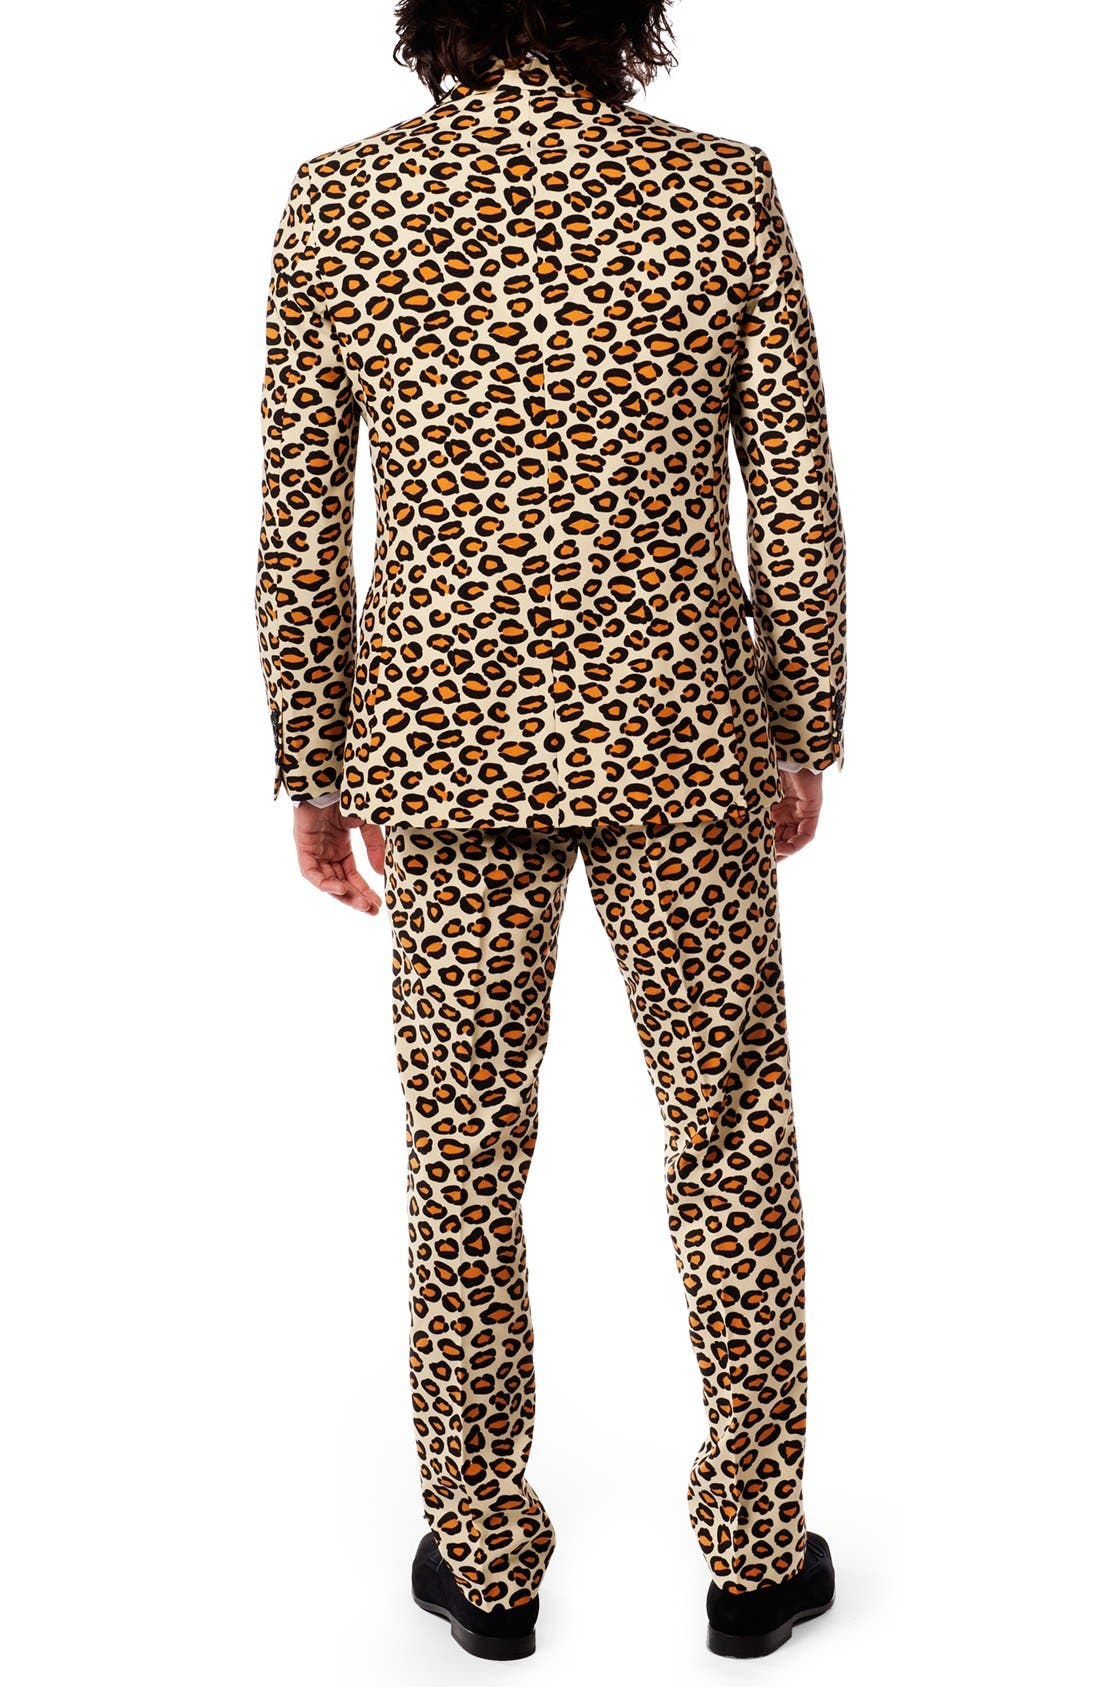 Alternate Image 2  - OppoSuits 'The Jag' Trim Fit Two-Piece Suit with Tie